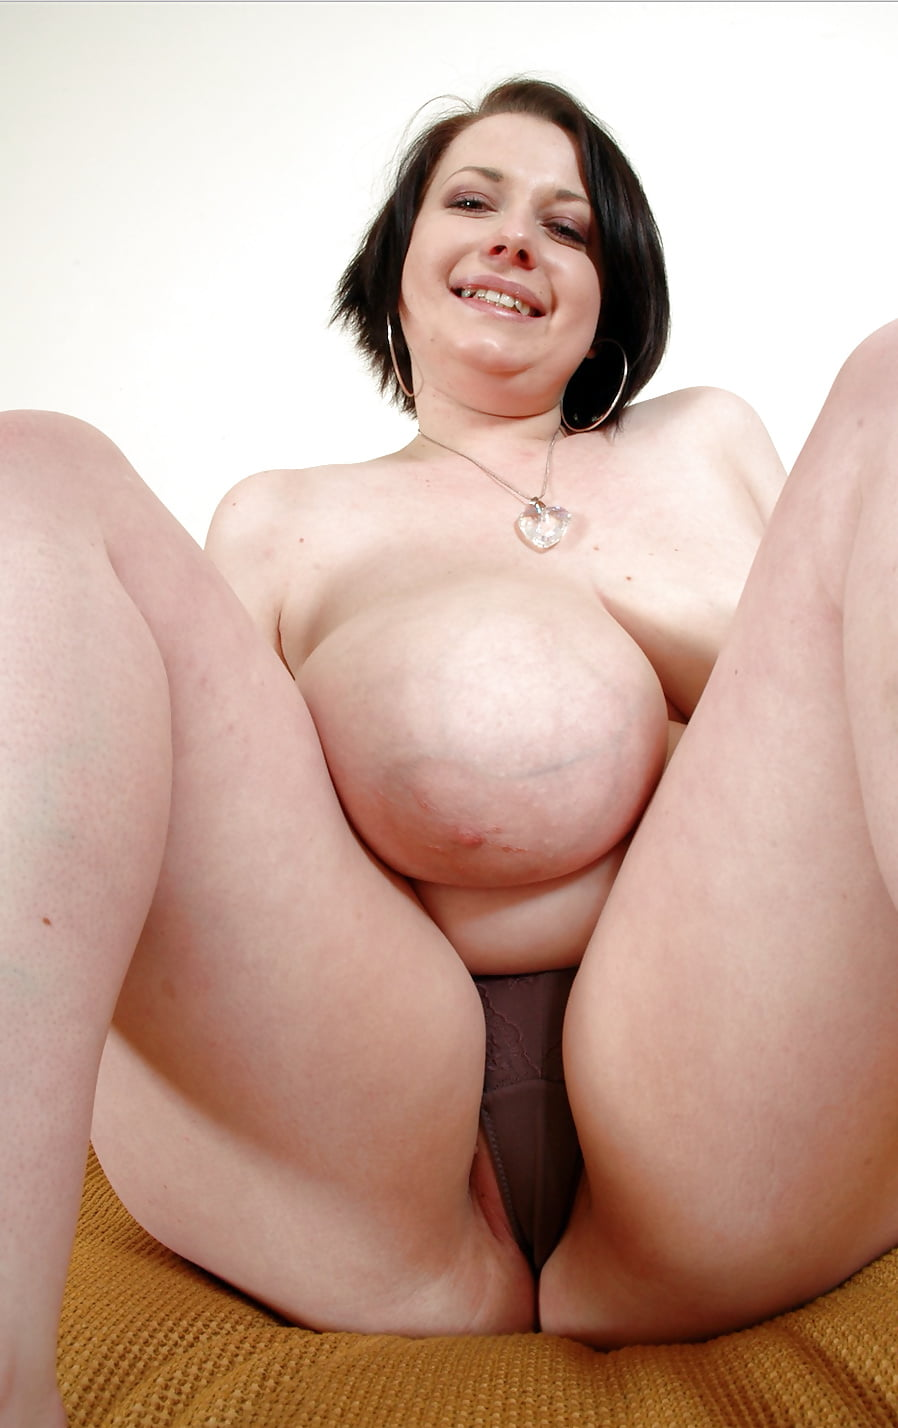 Mature boobs xhamster final, sorry